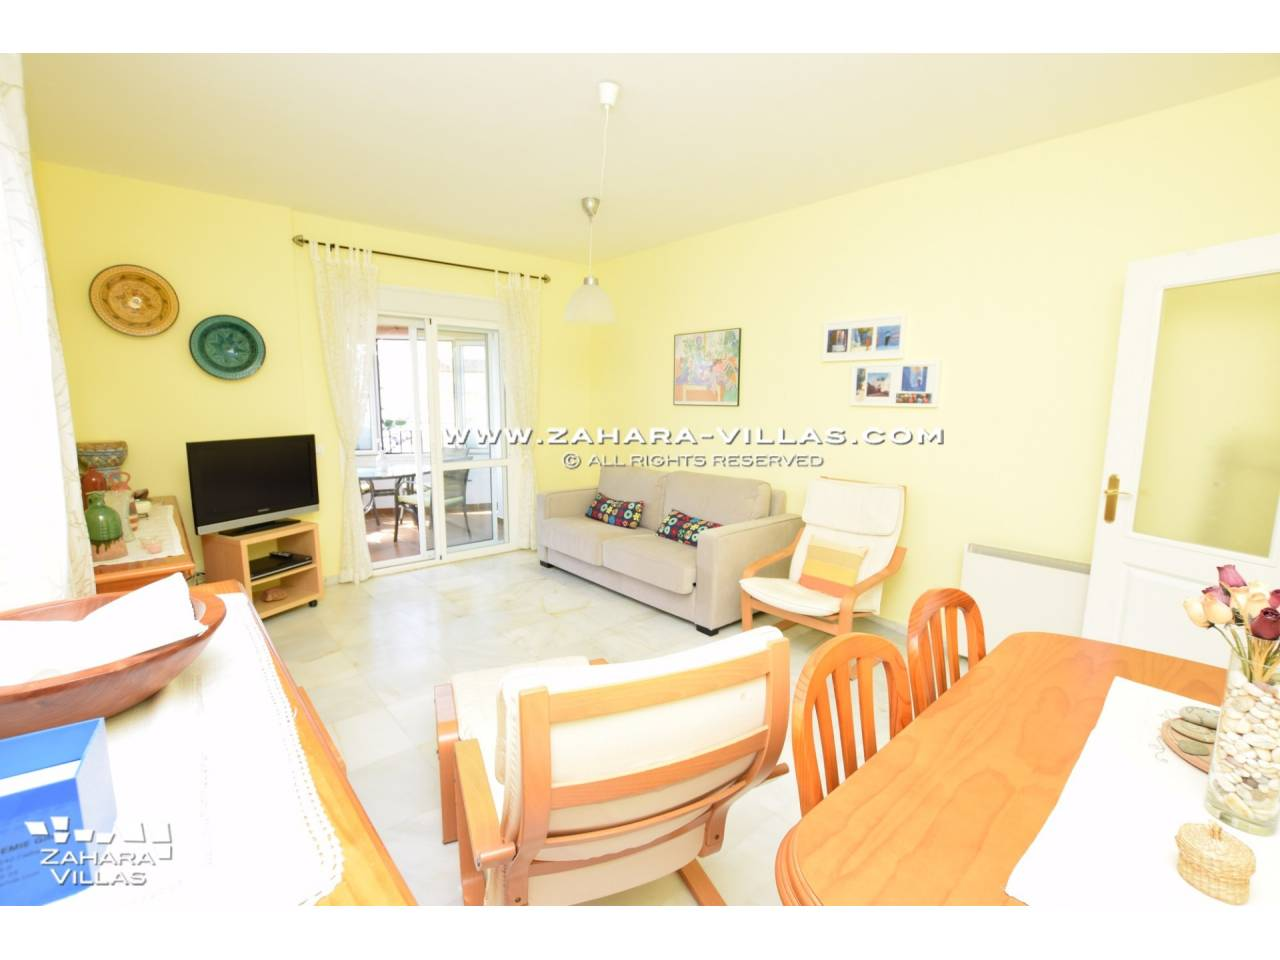 Imagen 10 de Amazing Apartment for sale in Zahara de los Atunes